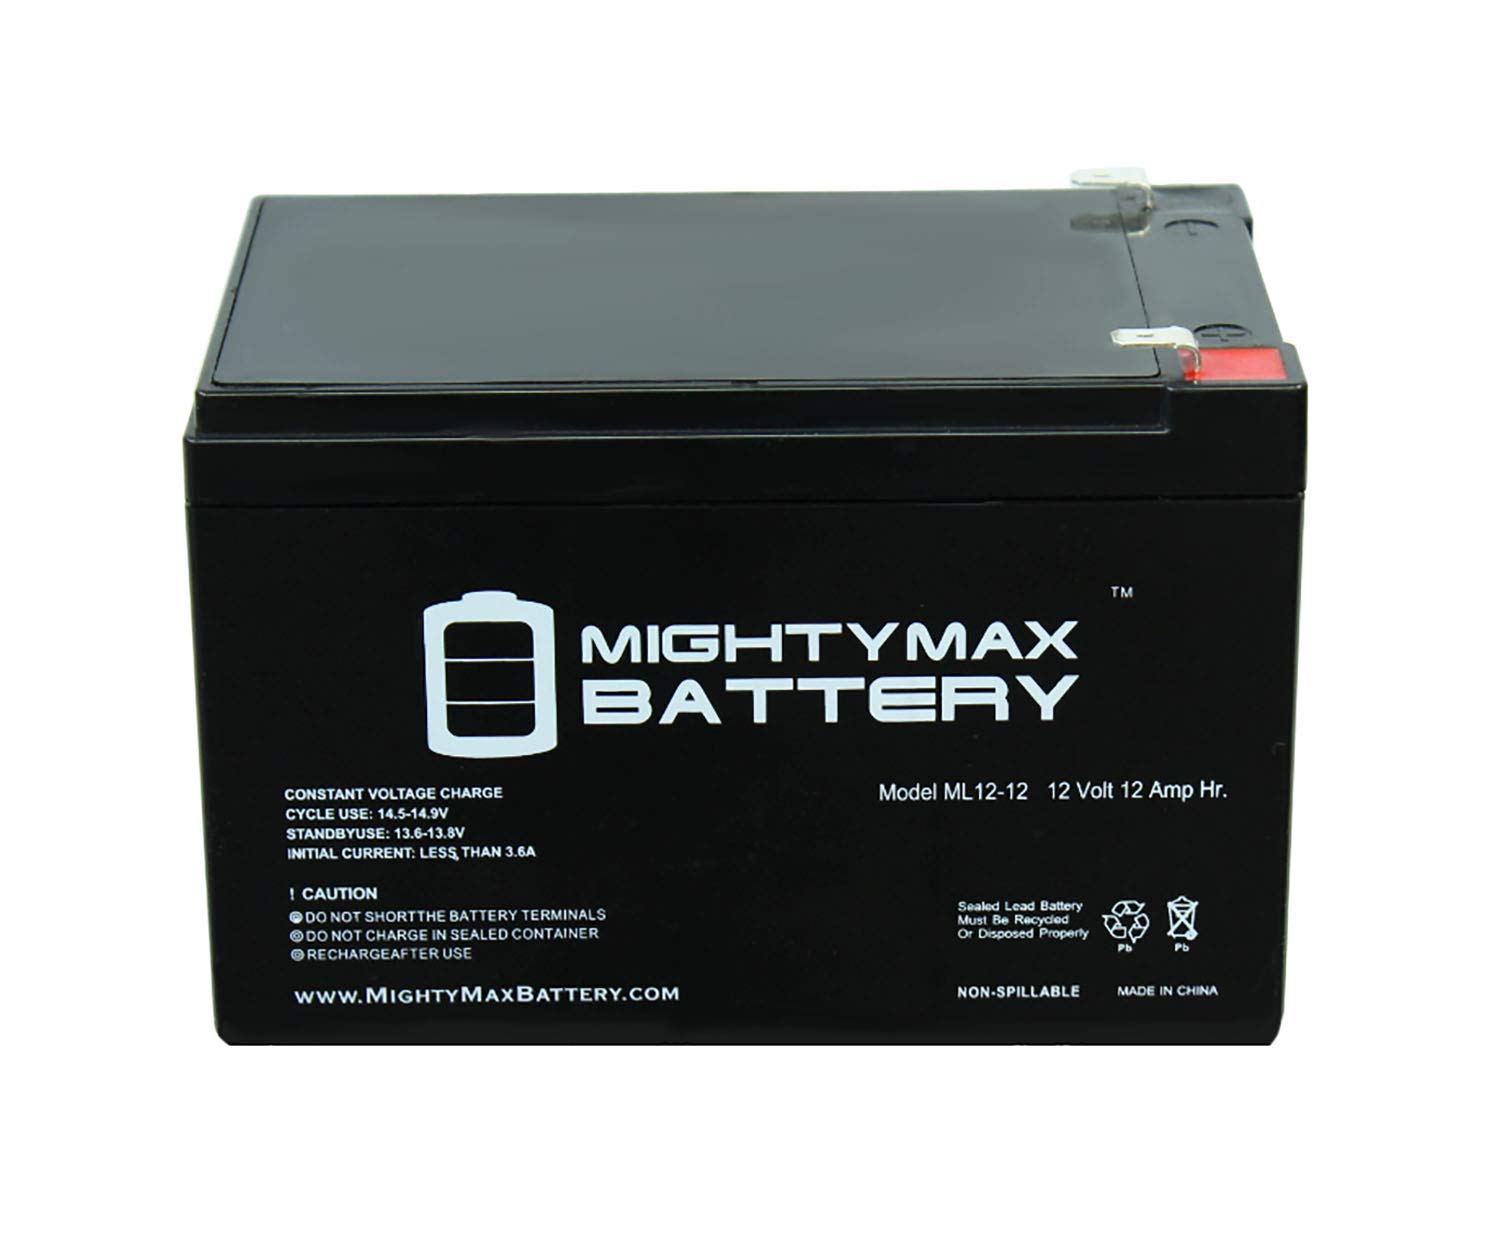 Mighty Max Battery 12V 12Ah F2 Scooter Battery for Enduring CB12-12, CB-12-12 - 2 Pack Brand Product by Mighty Max Battery (Image #3)